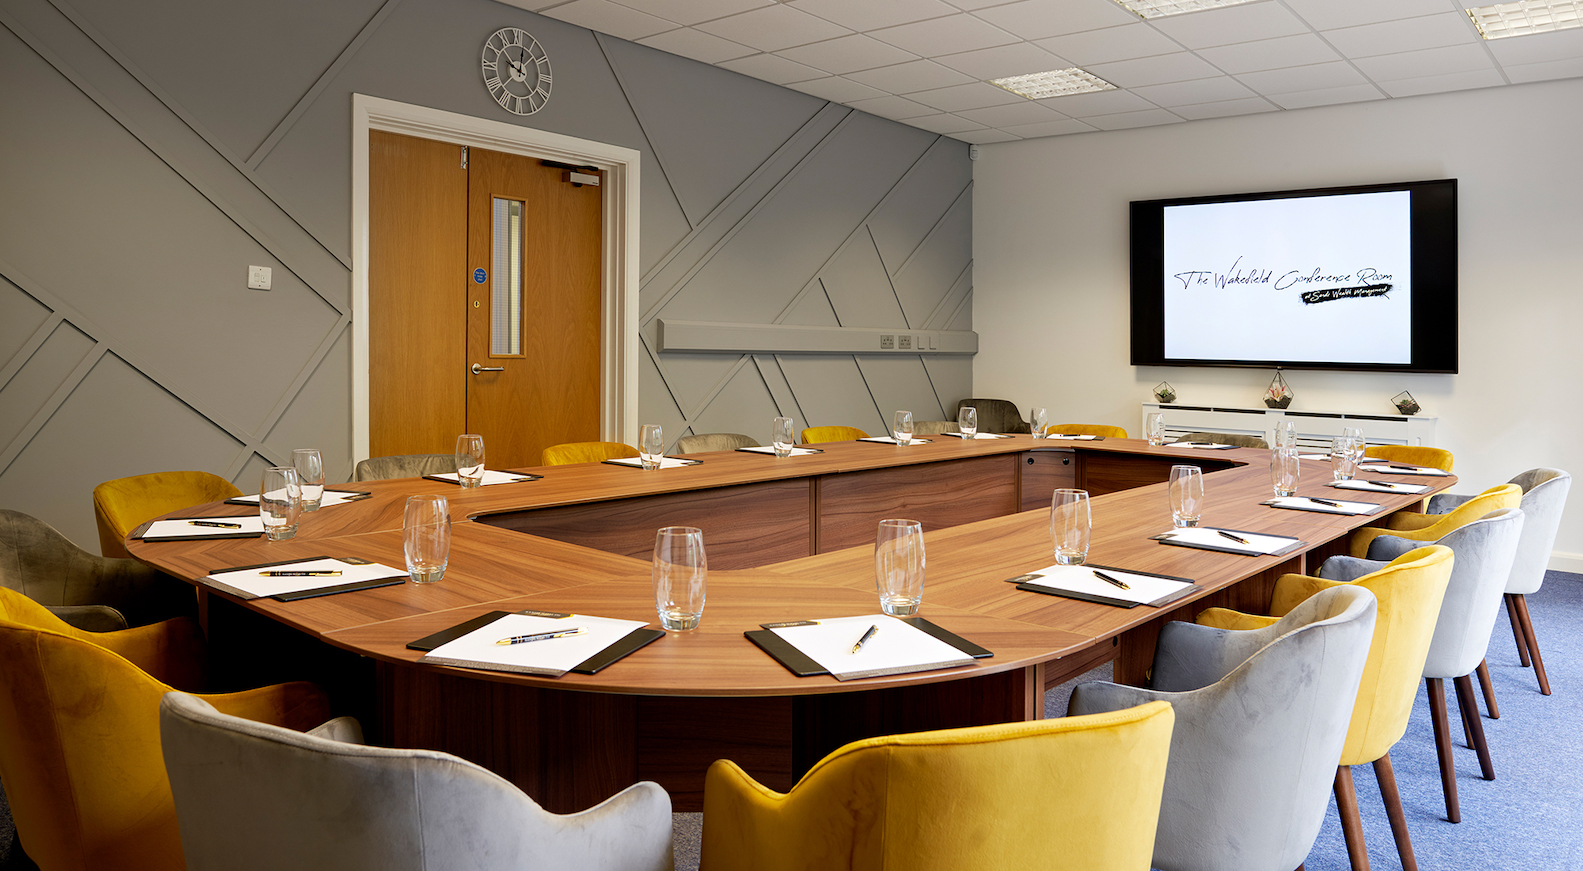 The Wakefield Conference Room